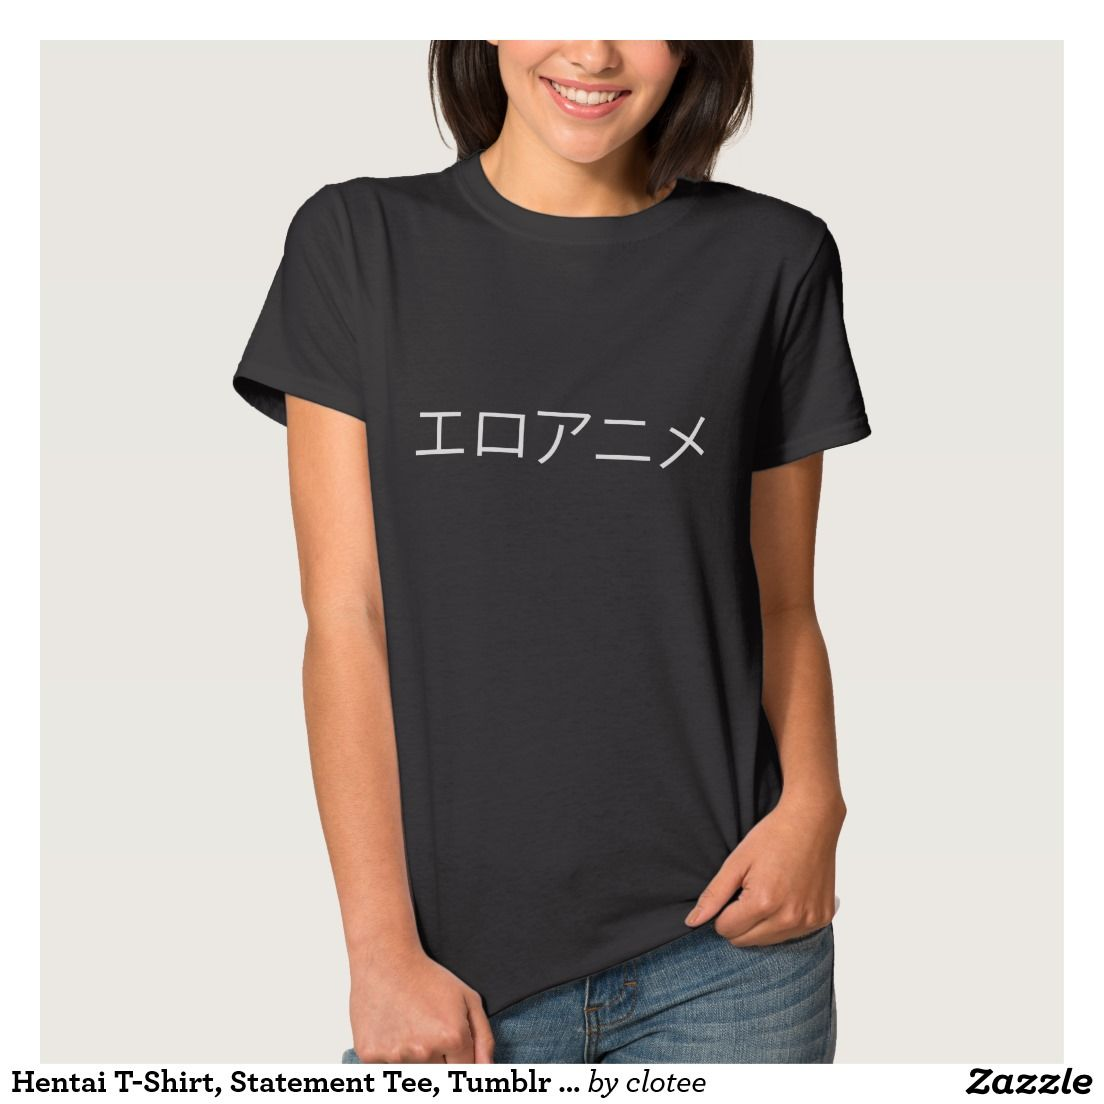 Hentai T-Shirt, Statement Tee, Tumblr Shirt. #tumblr #zazzle #polyvore #fashionblogger #streetstyle #inspiration #hipster #teen